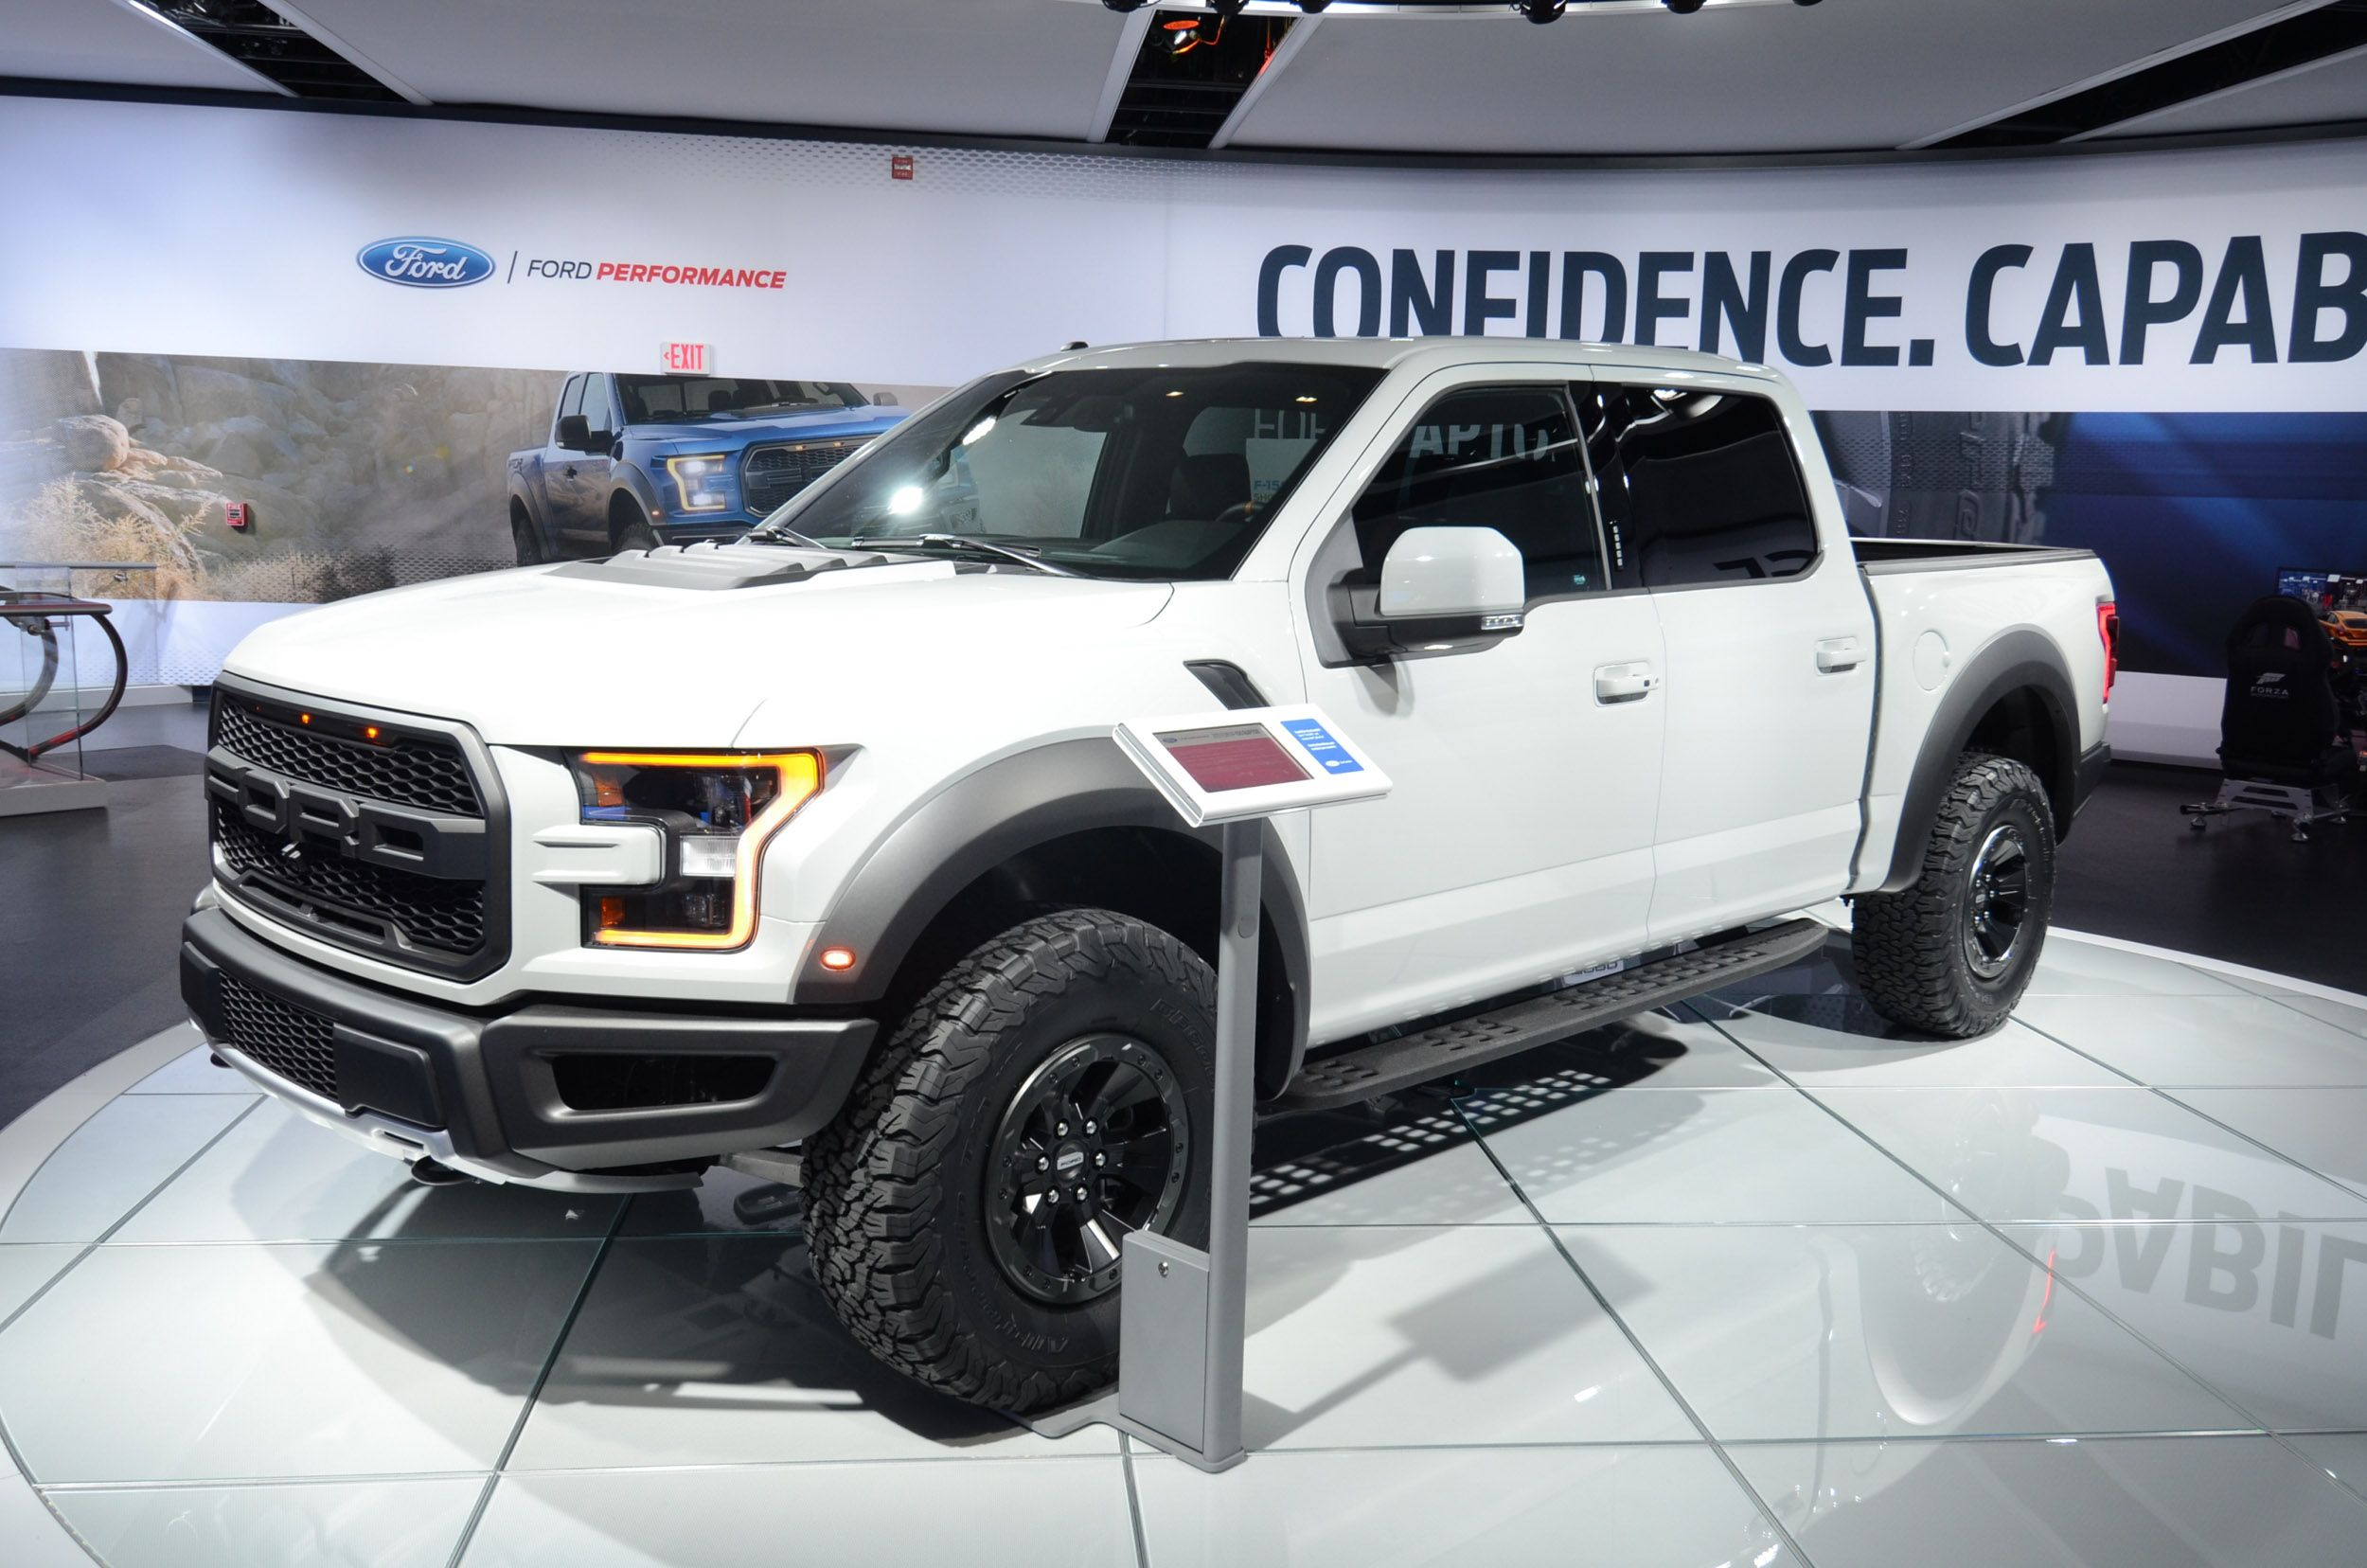 The new features simply mean the 2017 ford raptor supercrew can handle rock crawling and sand running so it will be an off road delight to owners